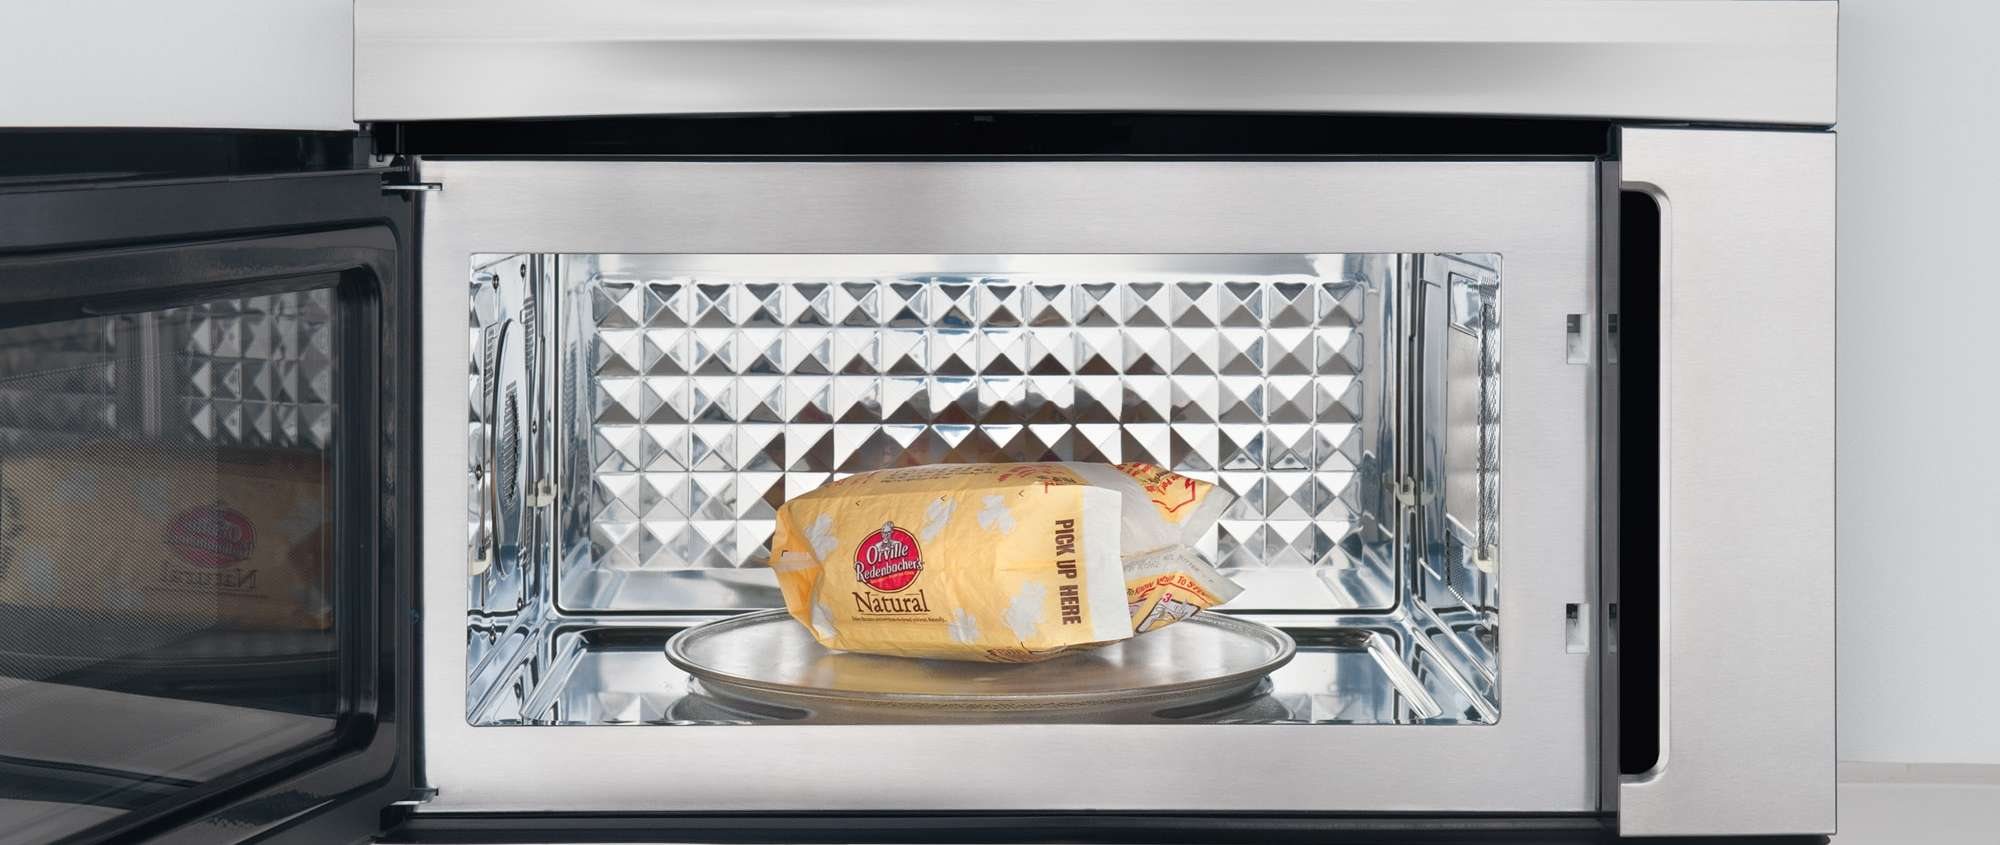 5 foolproof ways to get burnt popcorn smell out of the microwave